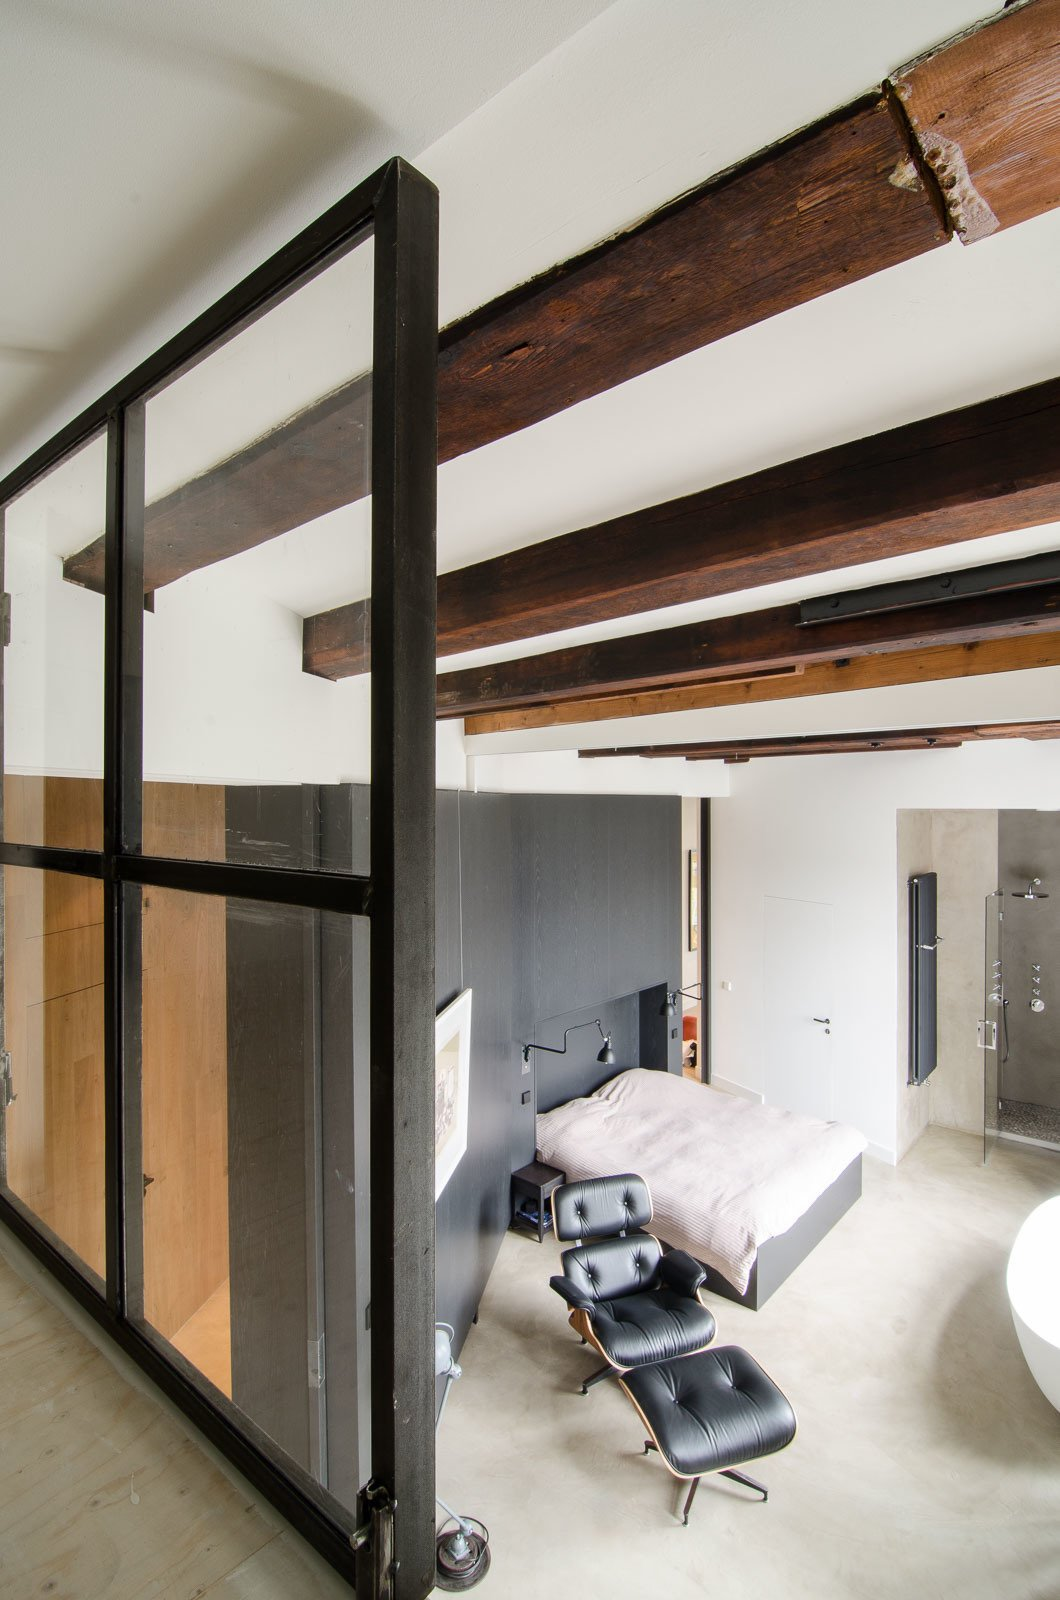 """The original beams, as seen from the loft, offer a warm and textural contrast to the sleek and modern finishes introduced during the renovation. """"There's a lot of nice patina to the very old beams; we definitely wanted to show that,"""" says van Hulzen.  Bloemgracht by Sarah Akkoush"""